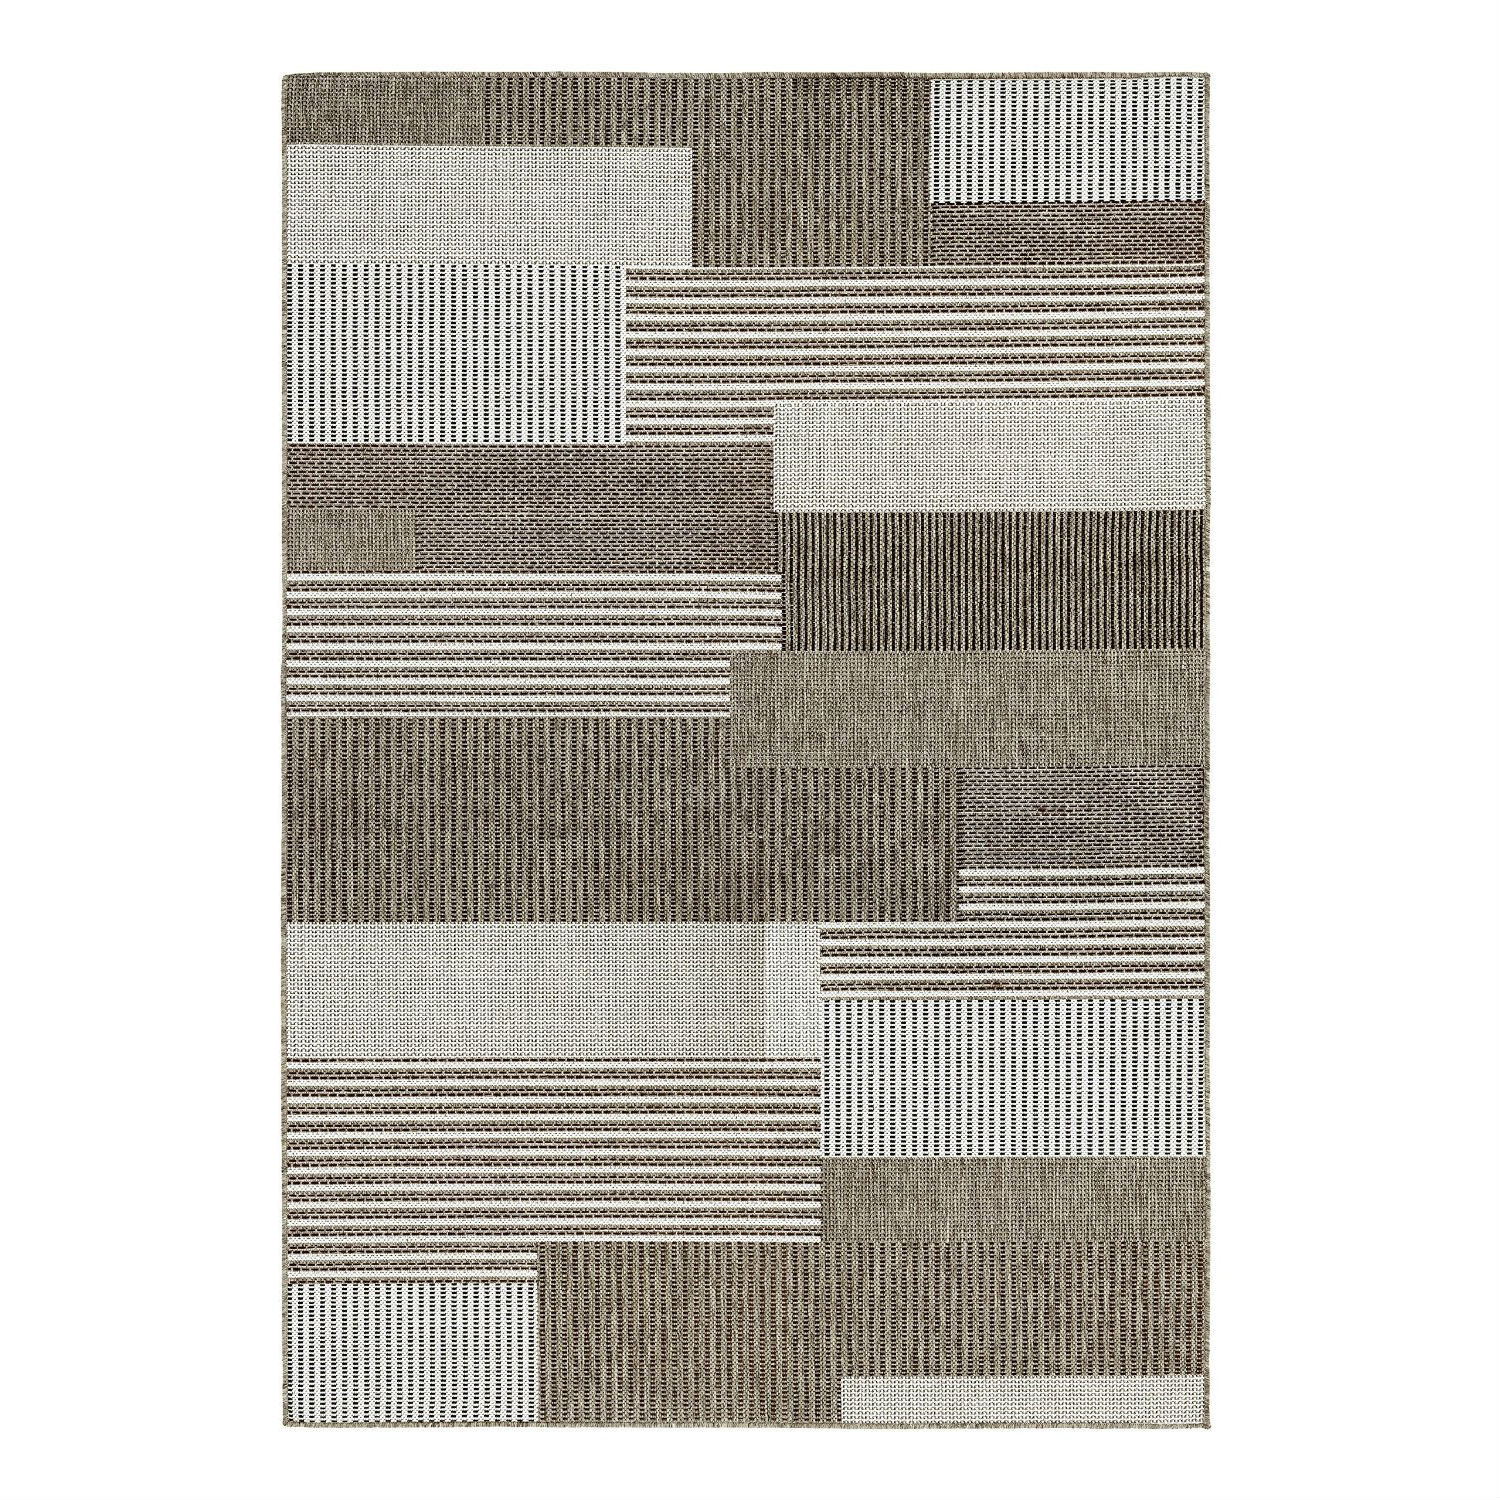 5'x x 7'6 Brown Sand Modern Geometric Stripe Area Rug, CMSR9901523 :  Relax in the comfort of your home with this 5'x x 7'6 Brown Sand Modern Geometric Stripe Area Rug. The varying motifs, ranging from graphic stripes to geometric patterns, are sure to fit in seamlessly in both your outdoor spaces and indoor rooms. These multi-purpose area rugs are constructed in a unique structured flat weave, boasting a smooth surface that is perfect for outdoor or indoor use. Woven using 100% fiber-enhanced polypropylene, each of the subtle patterns offer a highly durable pile with little upkeep required. Designed specifically to withstand outdoor elements, Monaco is UV stabilized to ensure each area rug in the collection retains its color due to sun exposure and other weather conditions, as well as mold and mildew resistant.